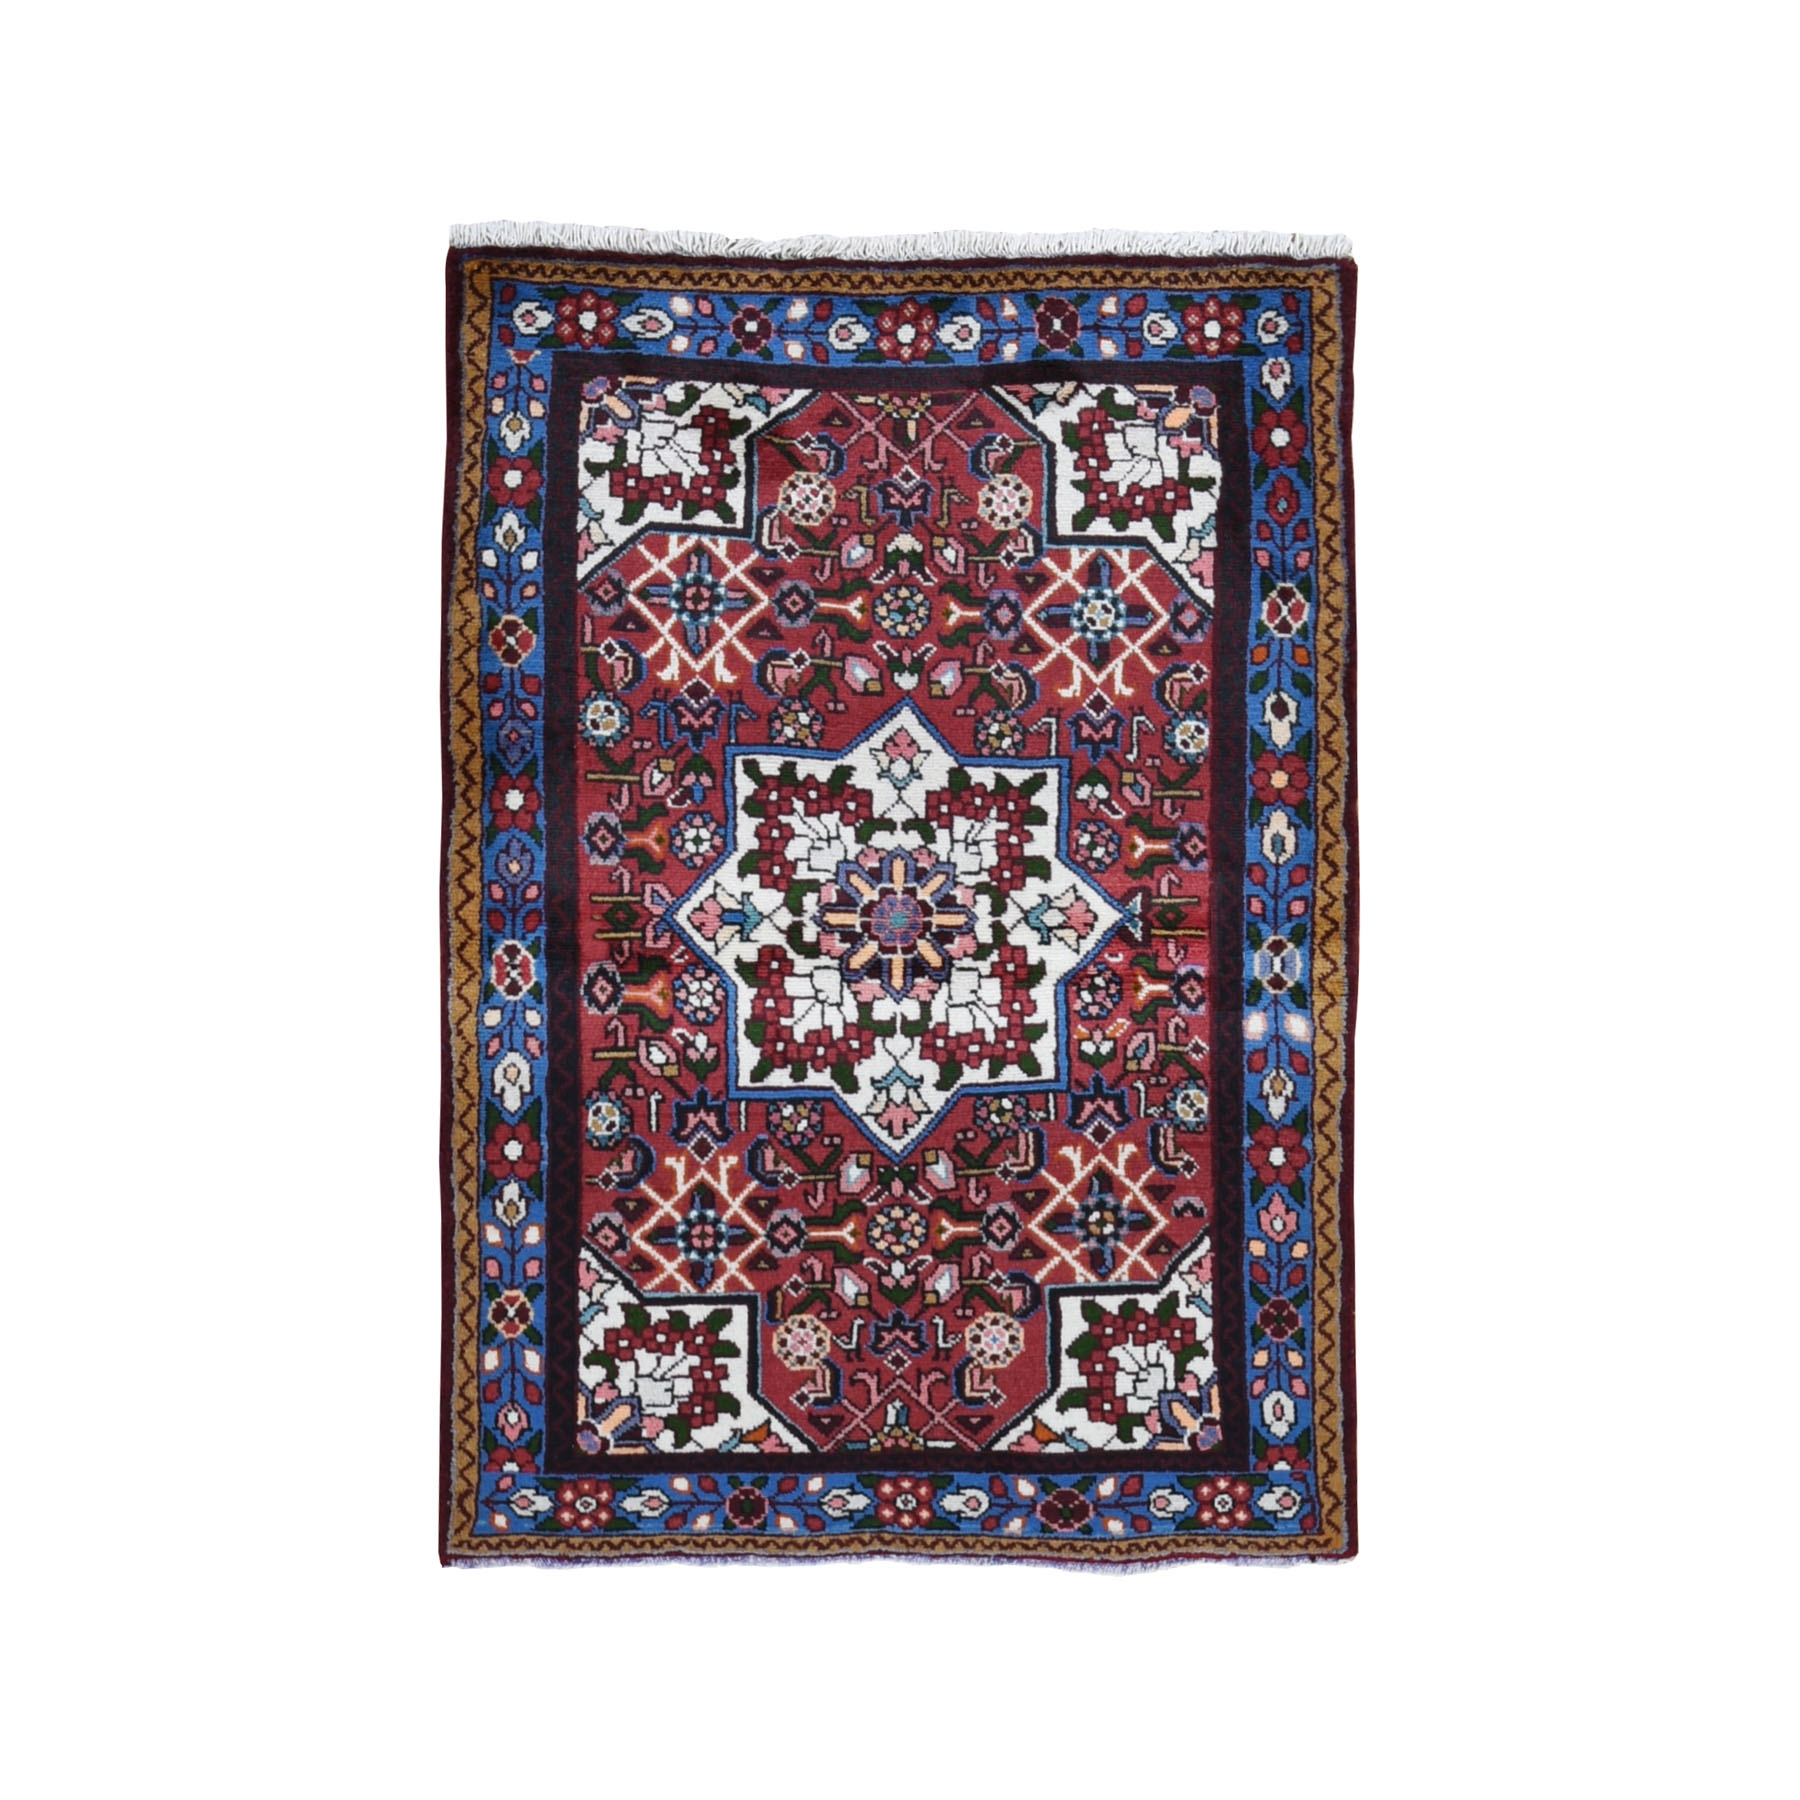 "3'4""x4'10"" Red New Persian Hamadan Flower Bouquet Design Pure Wool Hand Knotted Bohemian Rug"